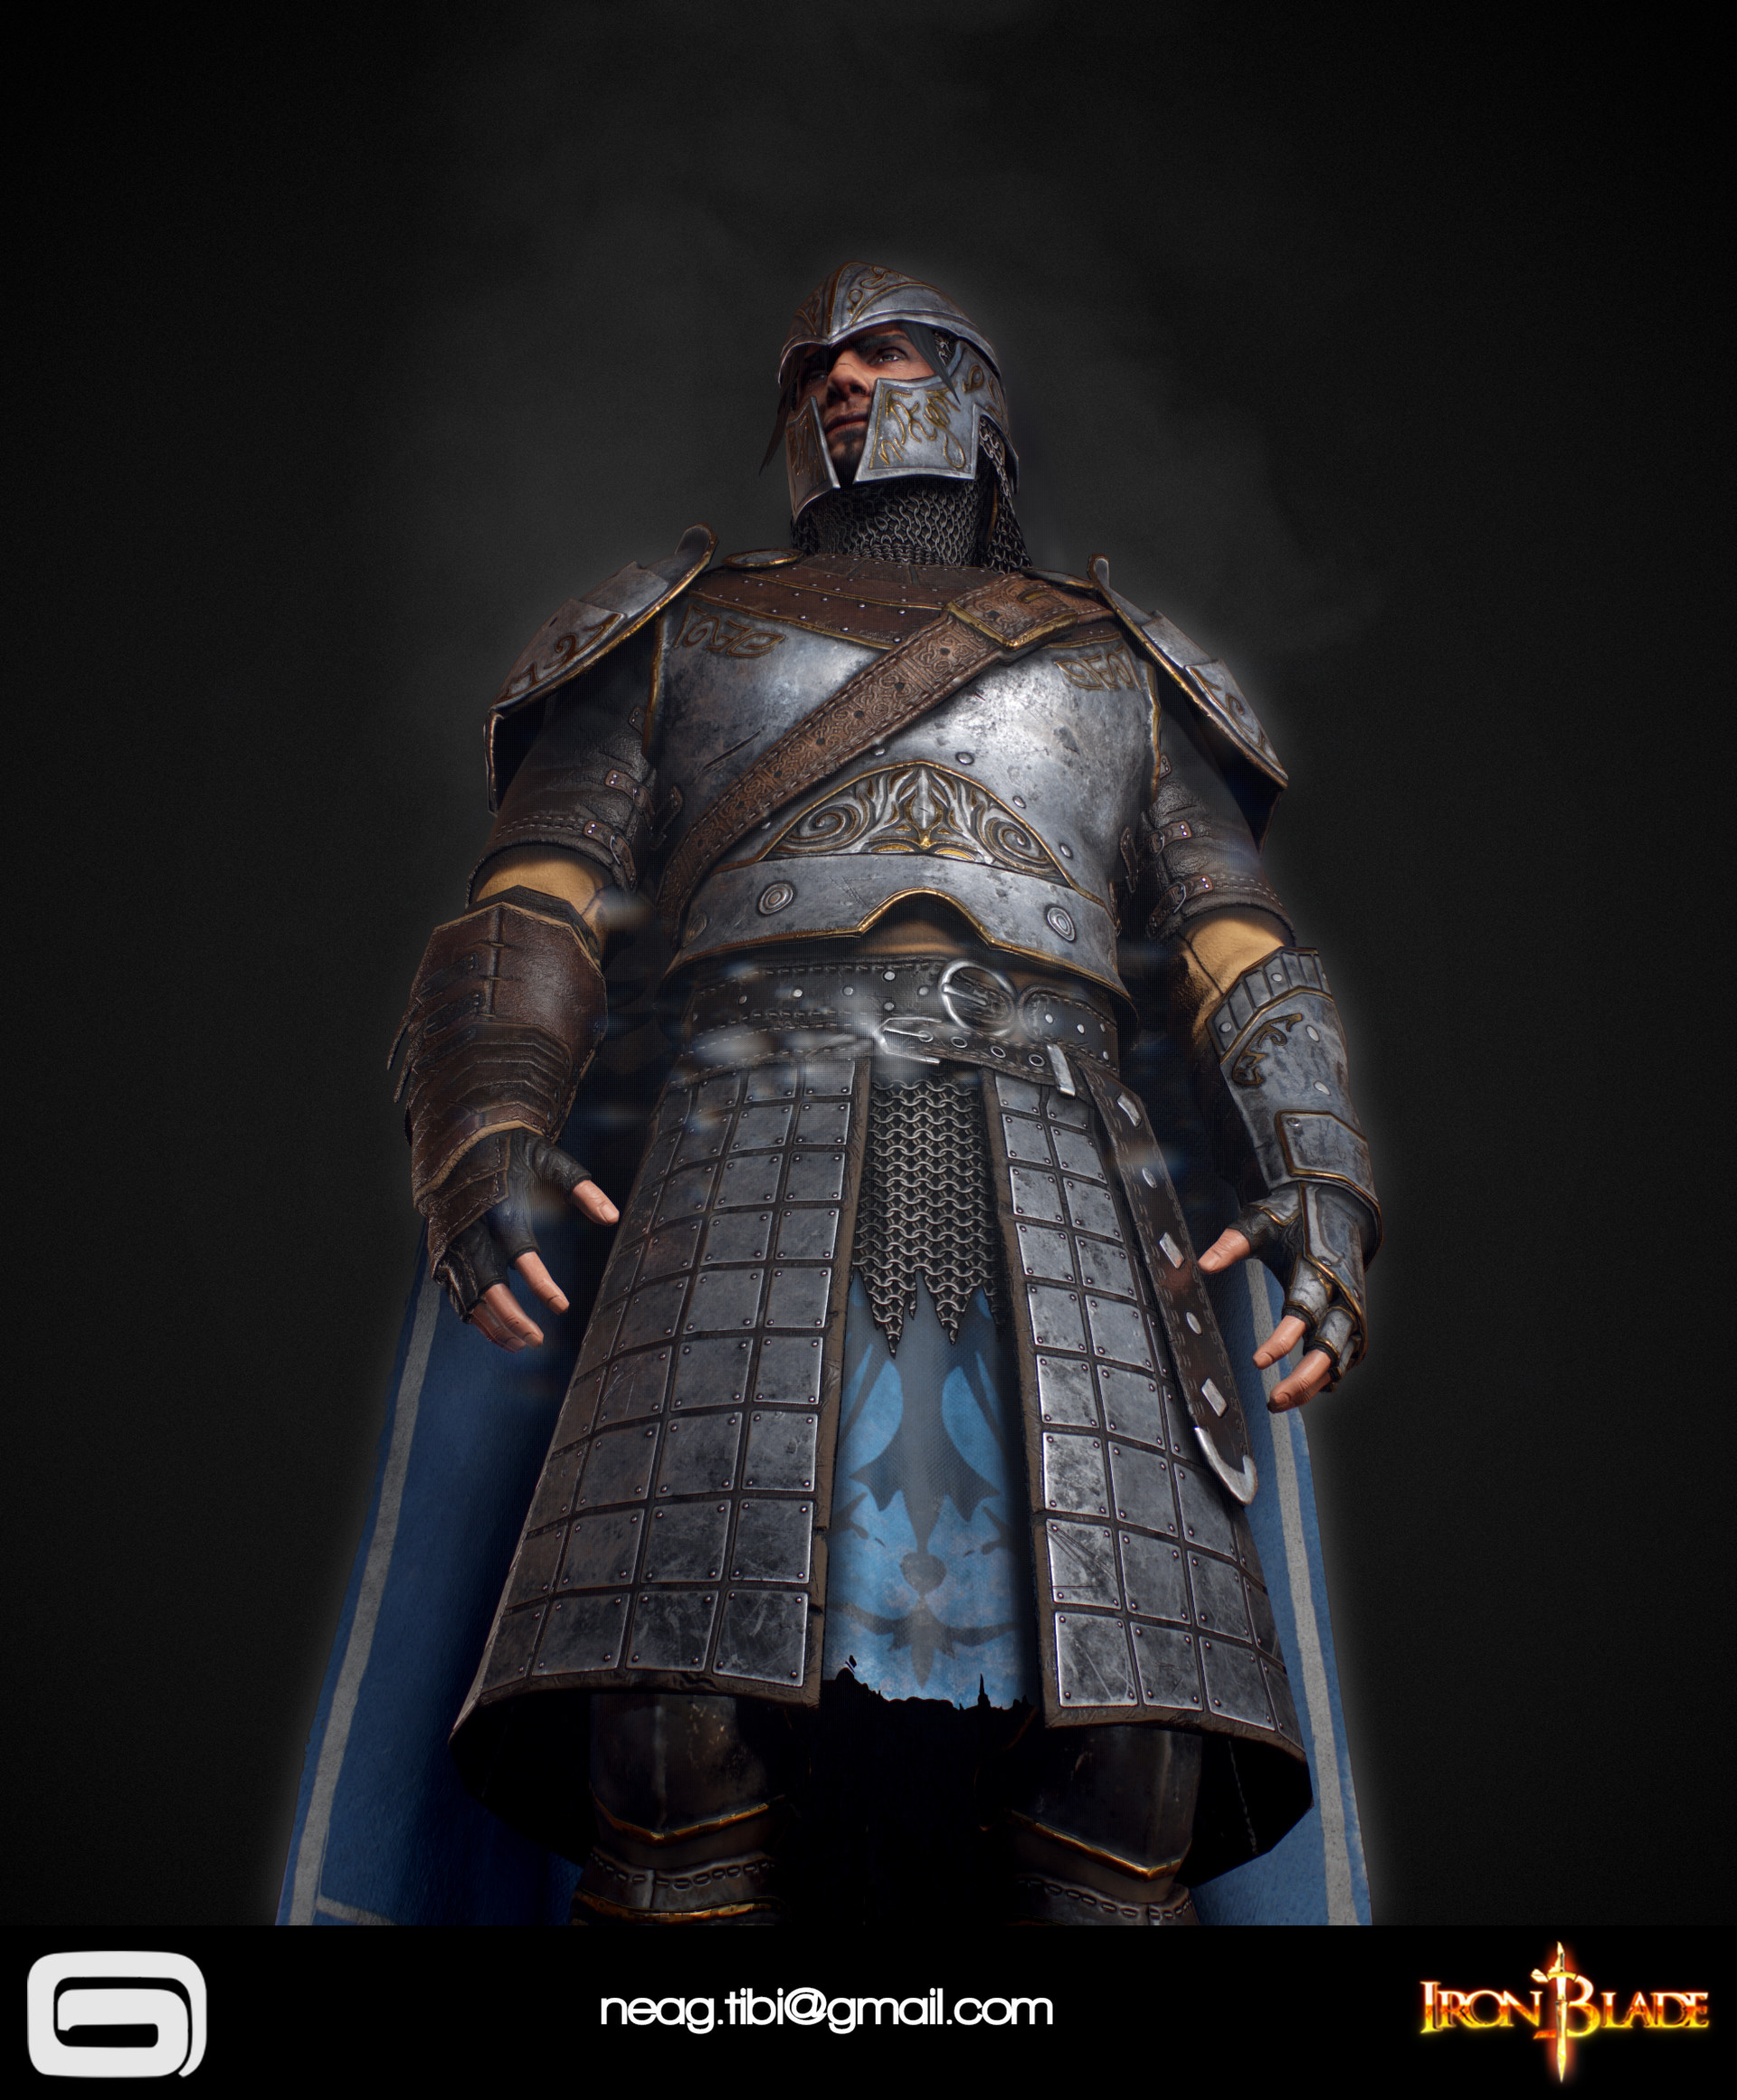 Tibi neag tibi neag iron blade mc armor 09c low poly 06